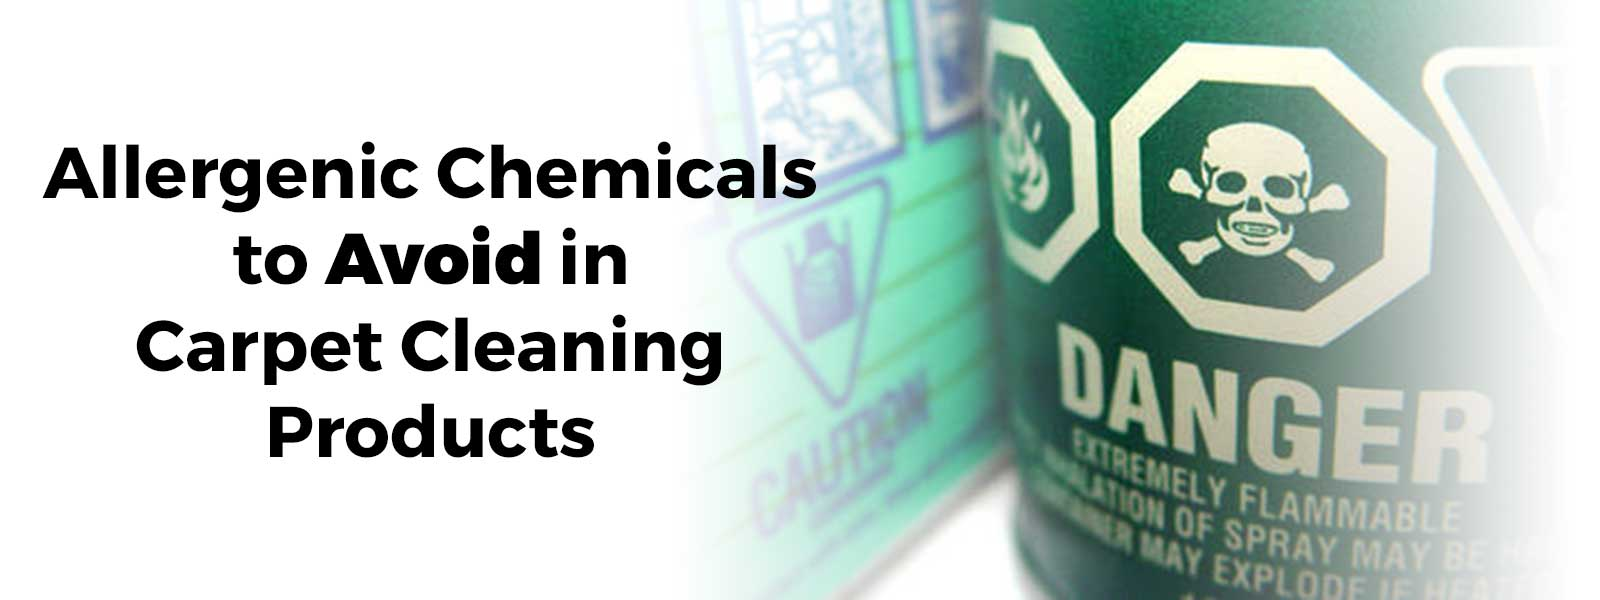 Allergenic-Chemicals-to-Avoid-in-Carpet-Cleaning-Products